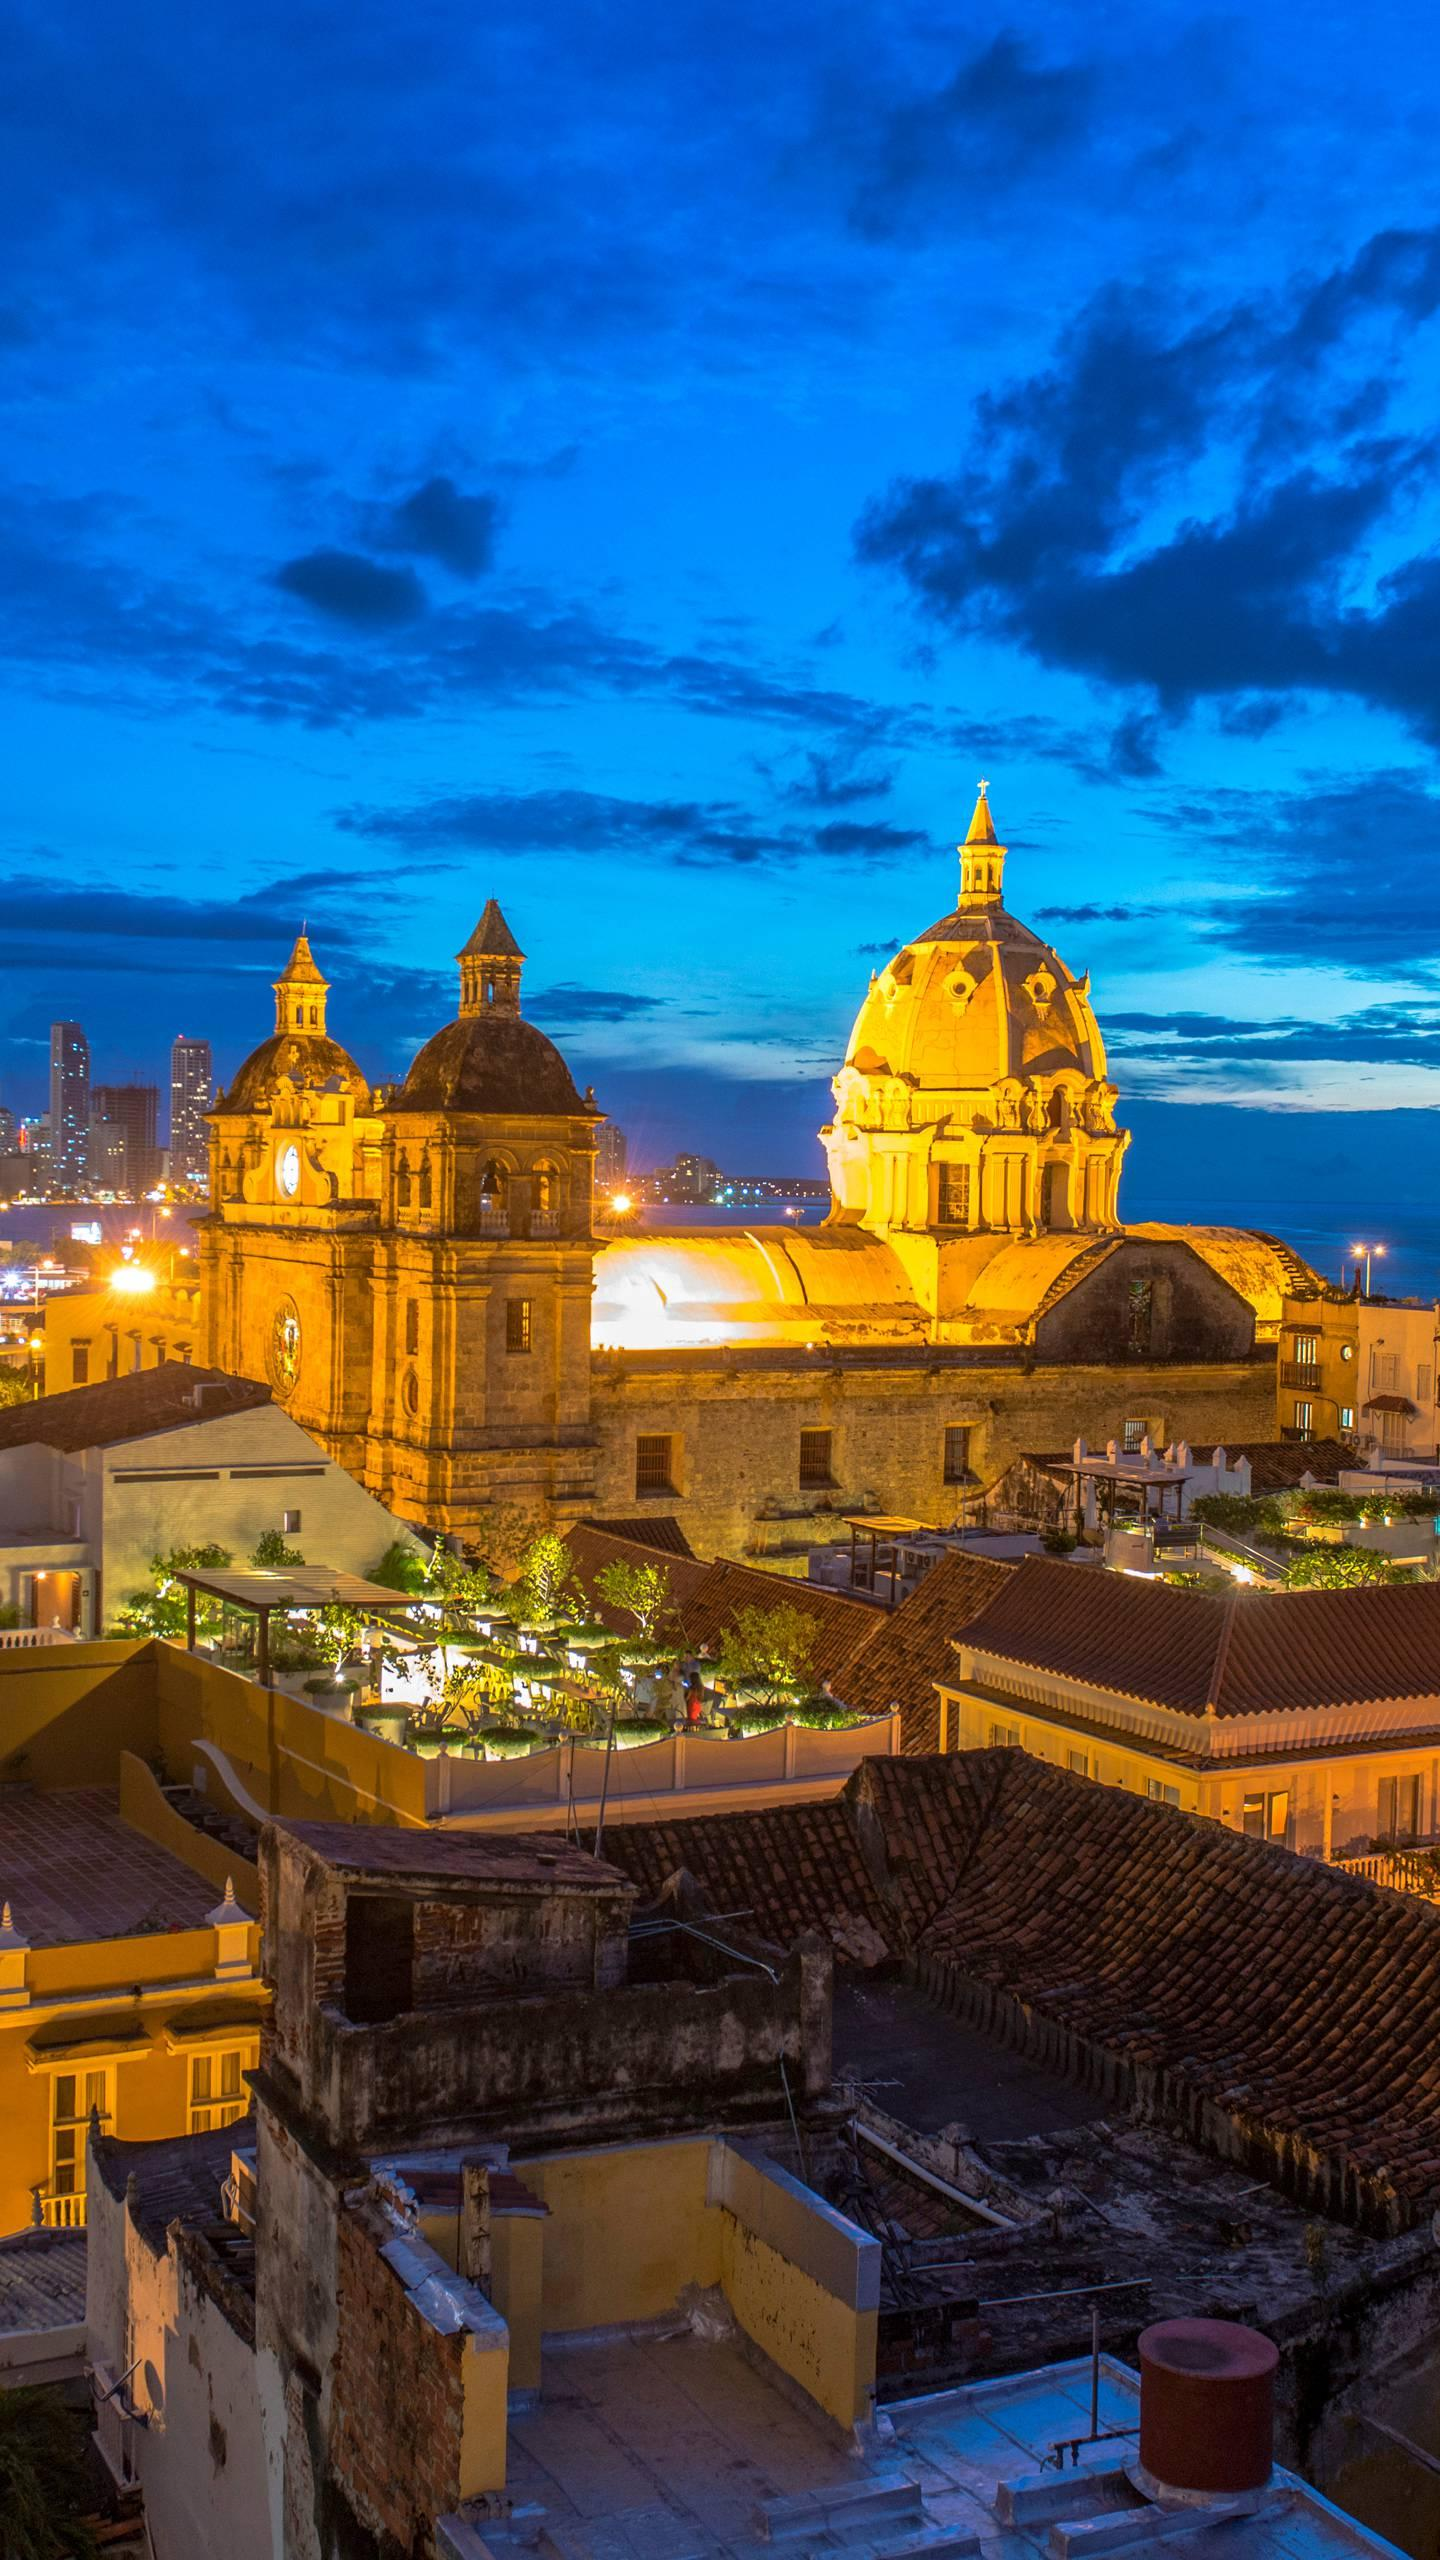 Colombia - Cartagena. One of the most fascinating cities in Colombia, known as the ancient fortress, is known as the most beautiful place in Latin America.